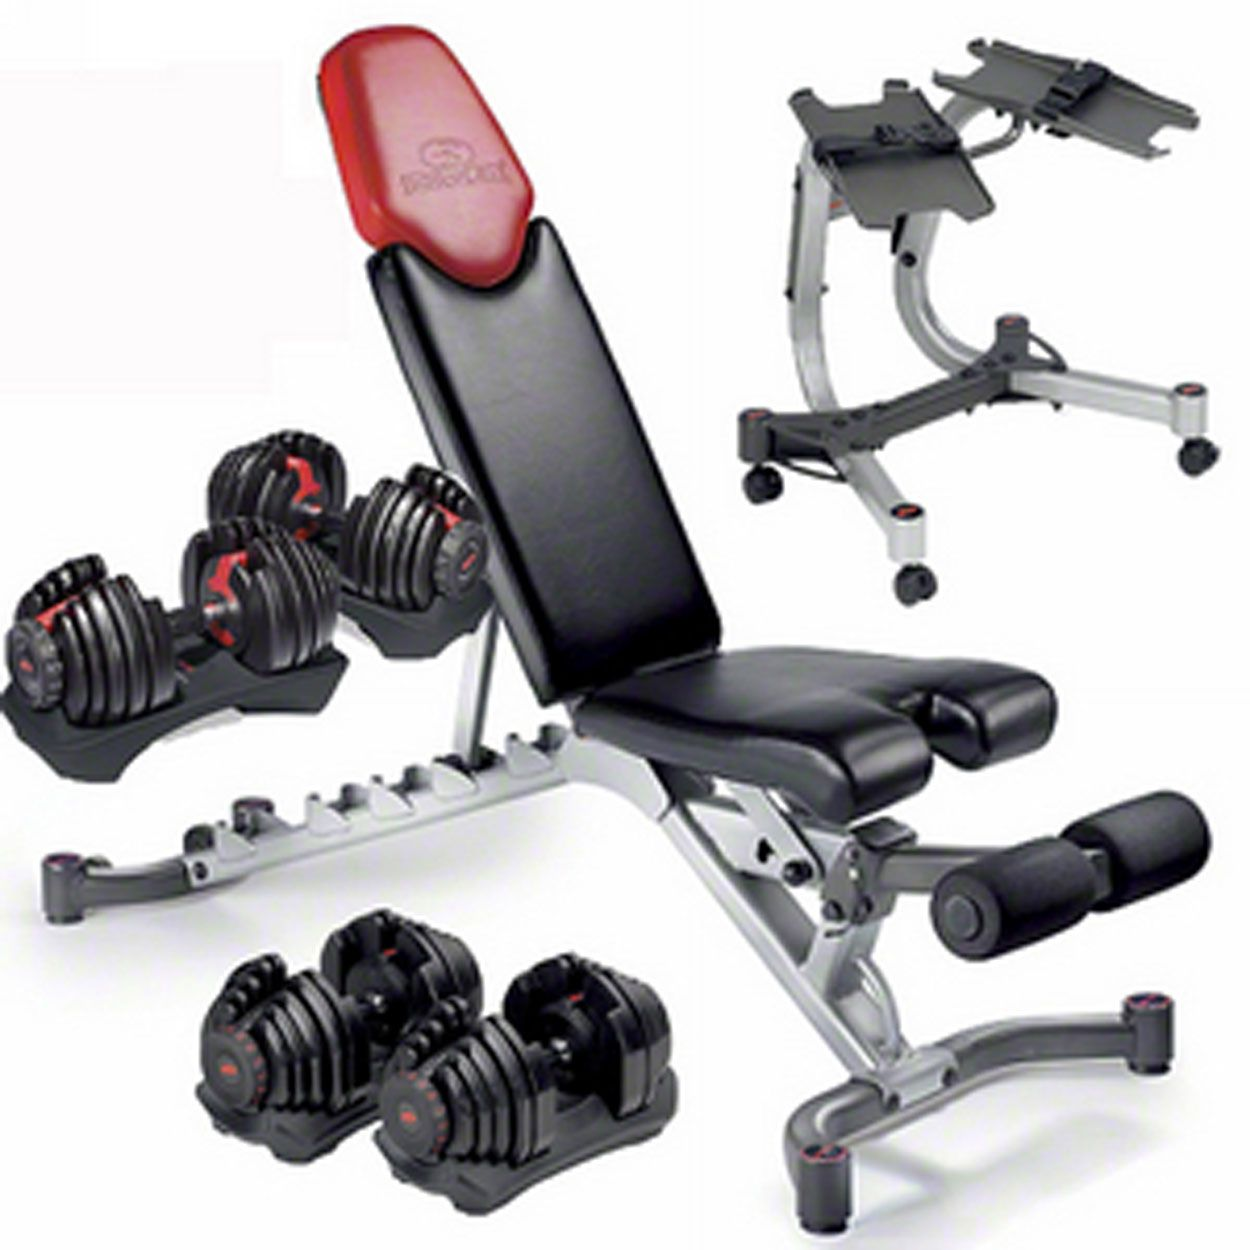 Strange Pin By Dumbbell Sg On Bowflex Adjustable Dumbbell Bowflex Ocoug Best Dining Table And Chair Ideas Images Ocougorg